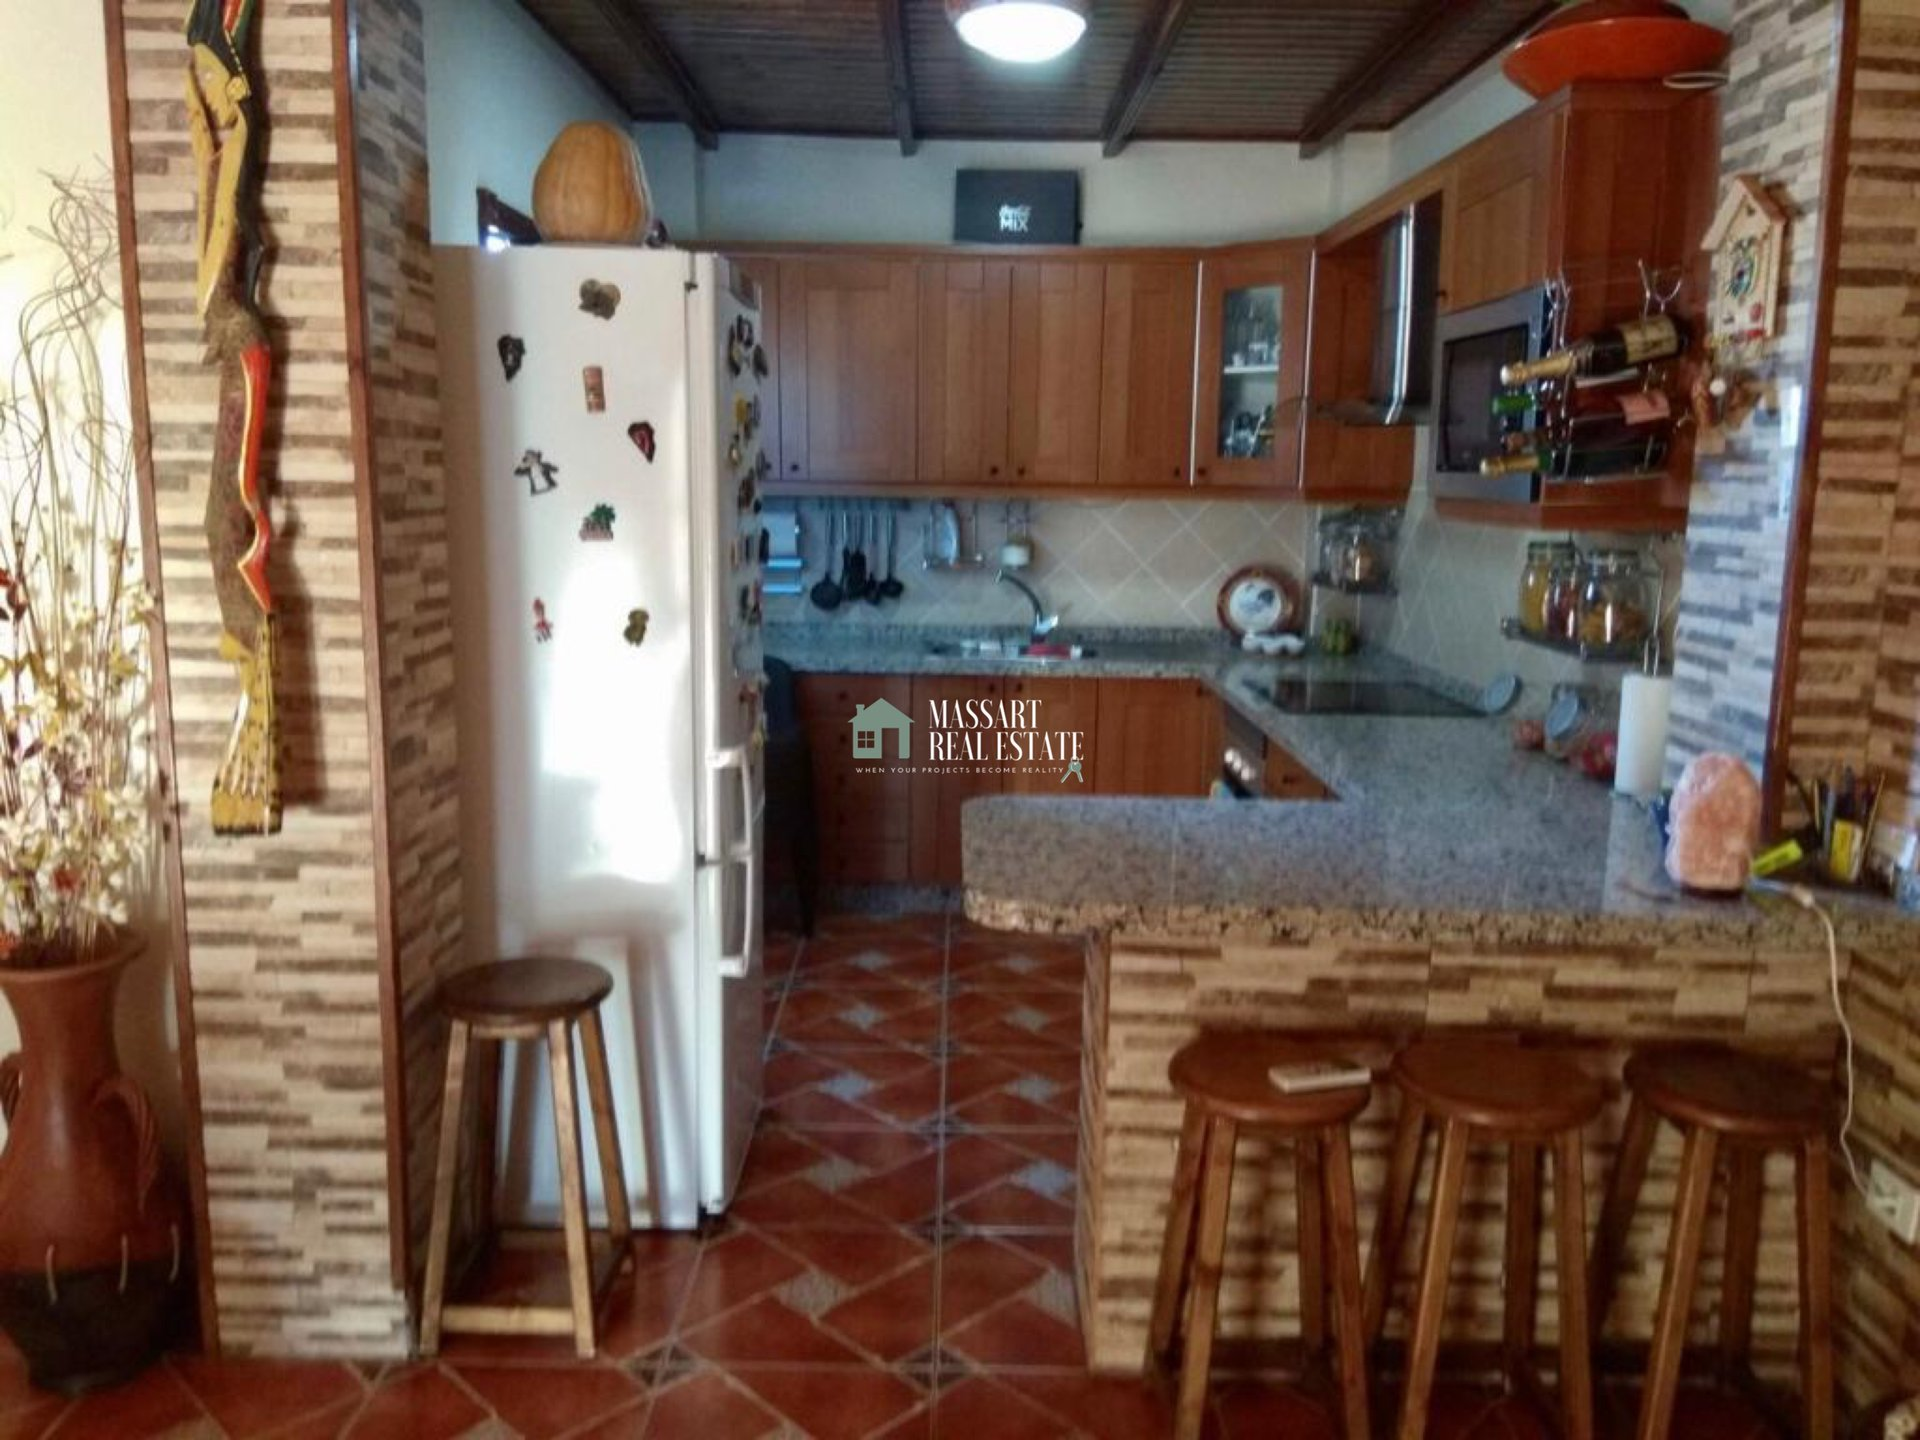 For rent in the beautiful coastal town of Alcalá (Guía de Isora), 80 m2 apartment characterized by its rustic and peculiar style.